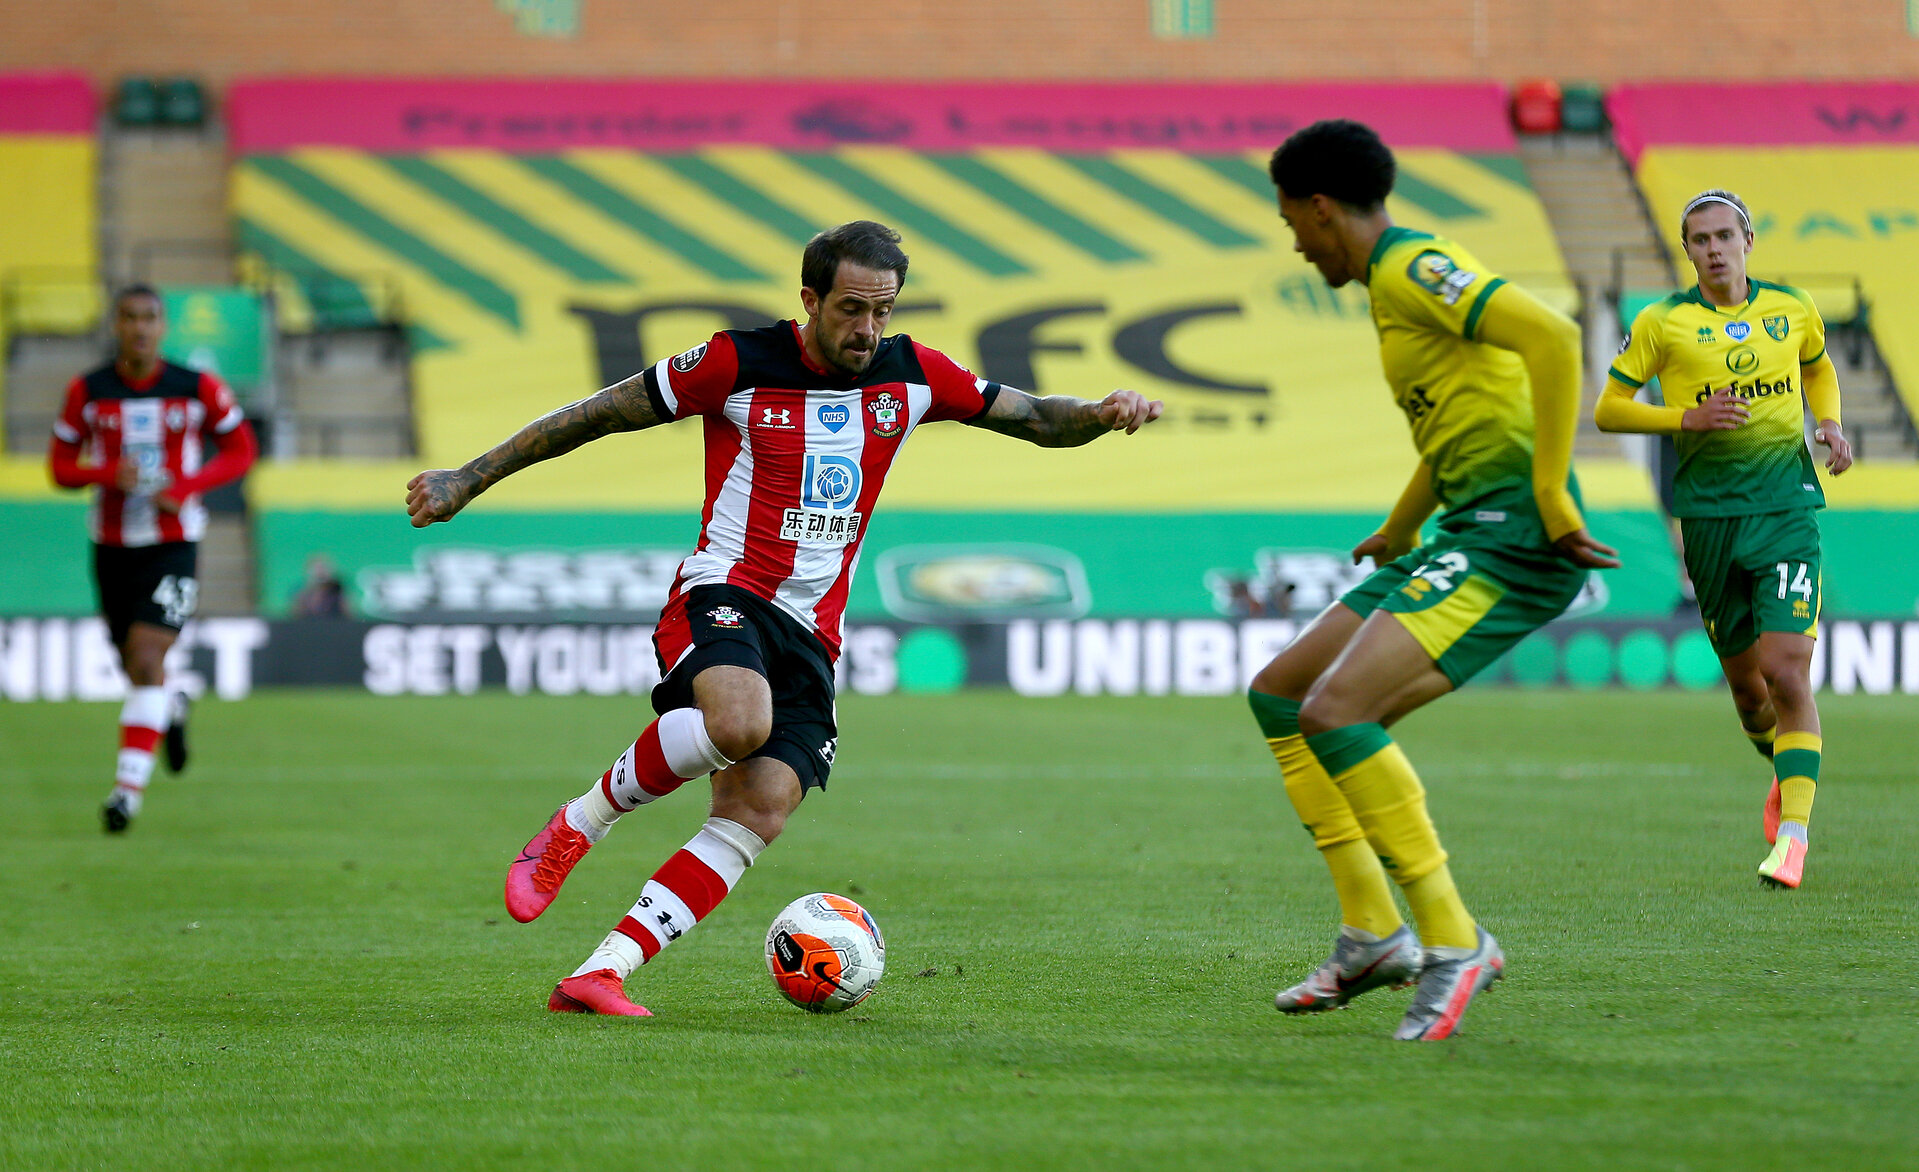 NORWICH, ENGLAND - JUNE 19: Danny Ings of Southampton during the Premier League match between Norwich City and Southampton FC at Carrow Road on June 19, 2020 in Norwich, United Kingdom. (Photo by Matt Watson/Southampton FC via Getty Images)